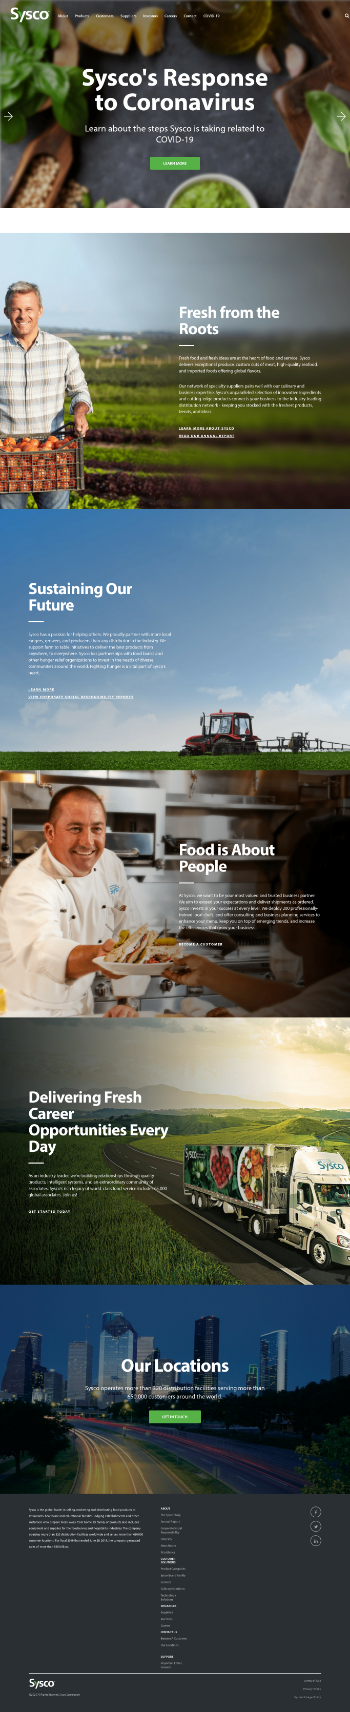 Sysco Corporation Website Screenshot